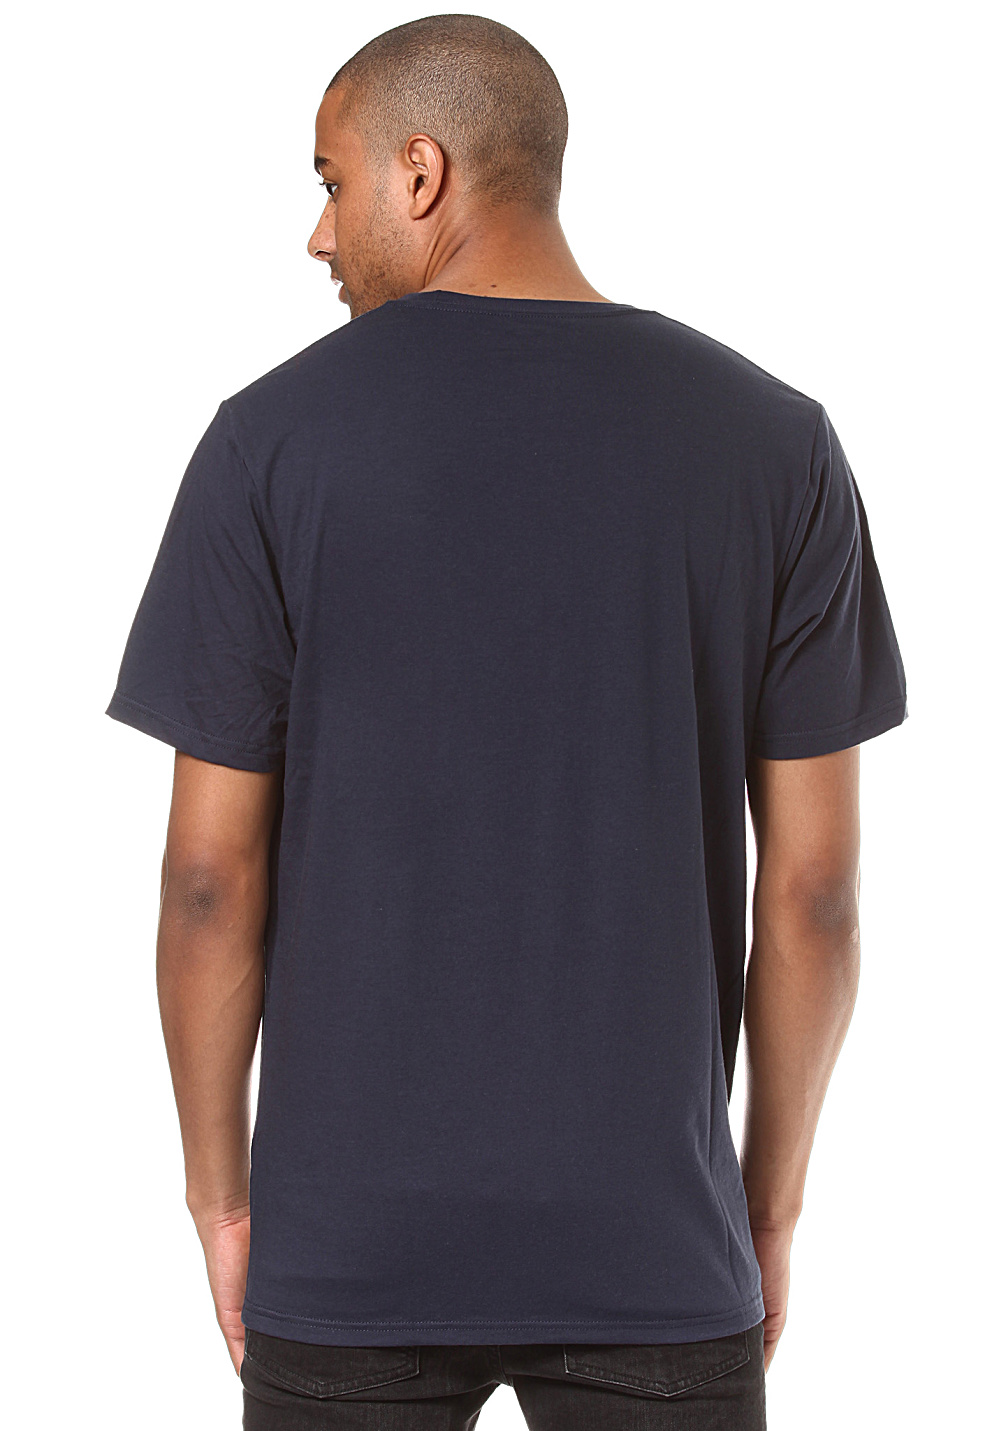 Next. -8%. This product is currently out of stock. OAKLEY. 50-Bark Ellipse  - T-Shirt for Men e0722ddc00db